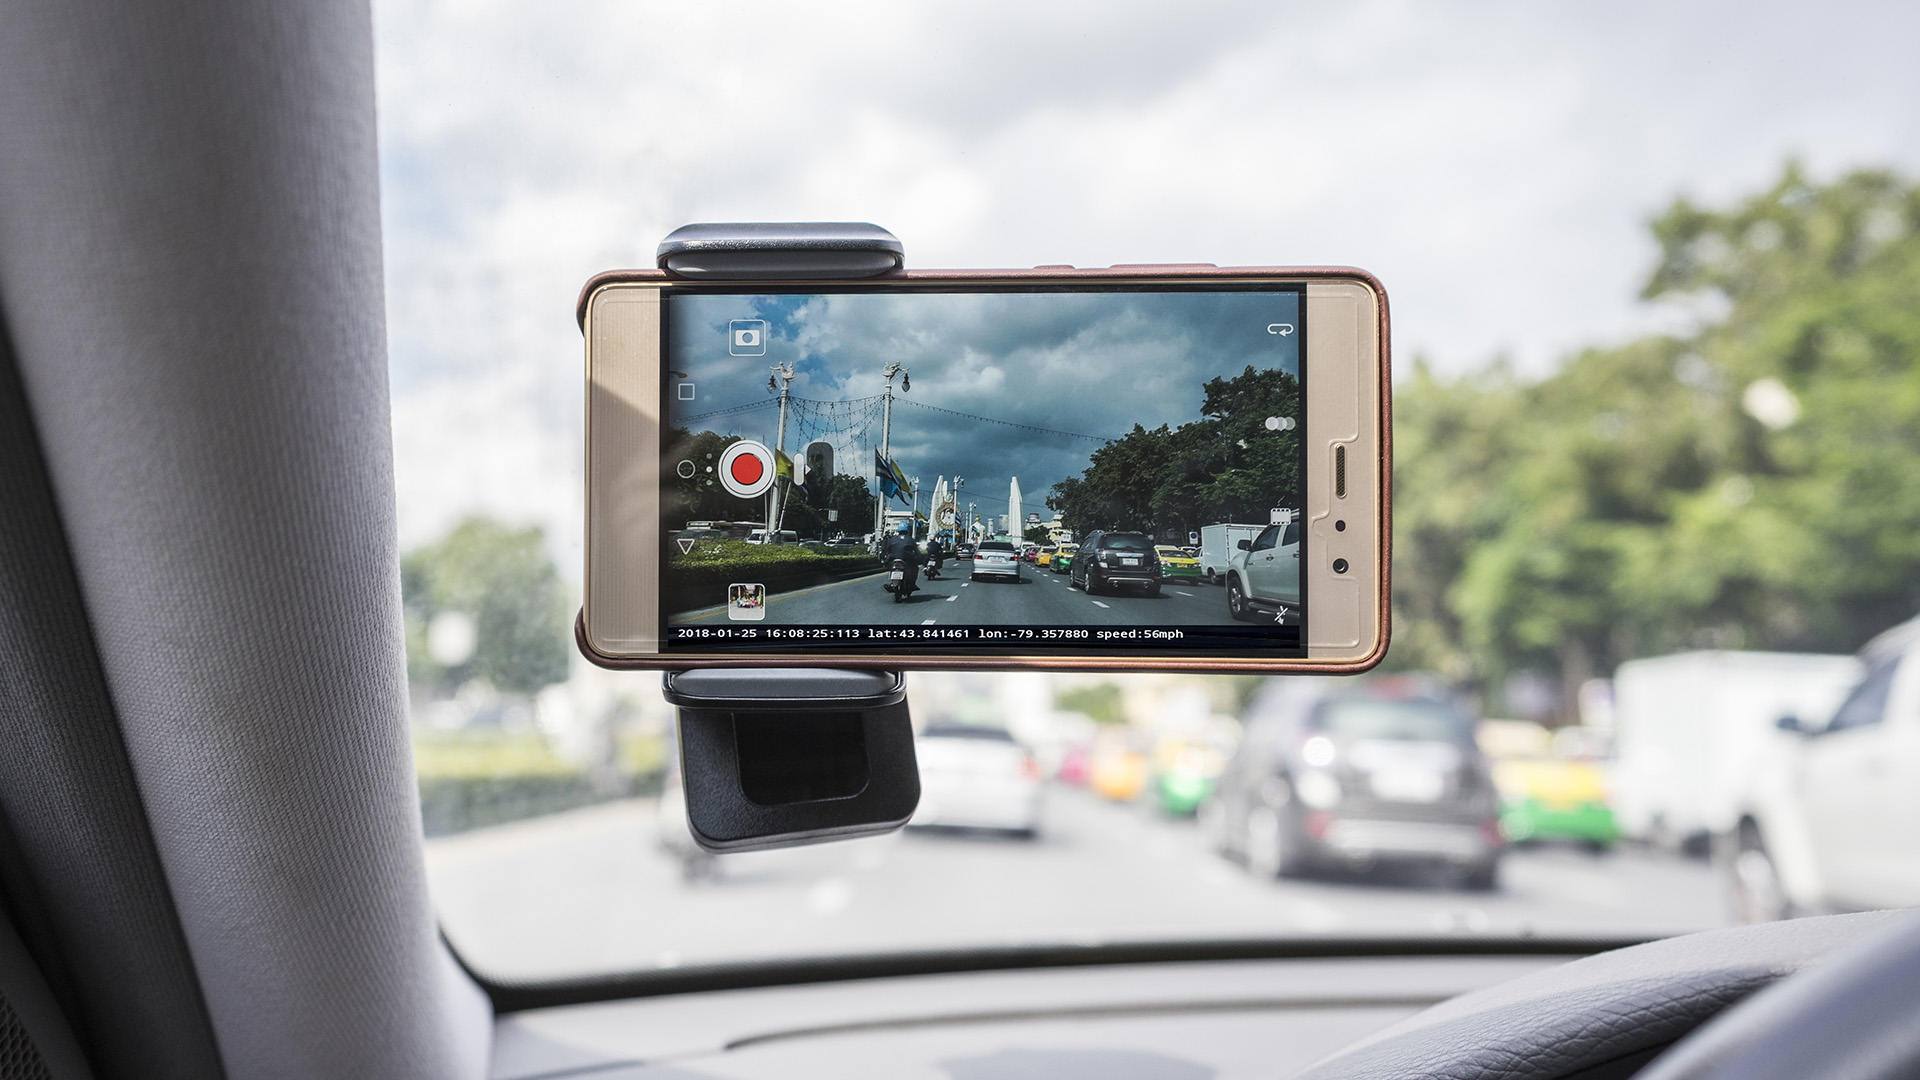 Driving with mobile phone Mounted on the windshield of a car for reording